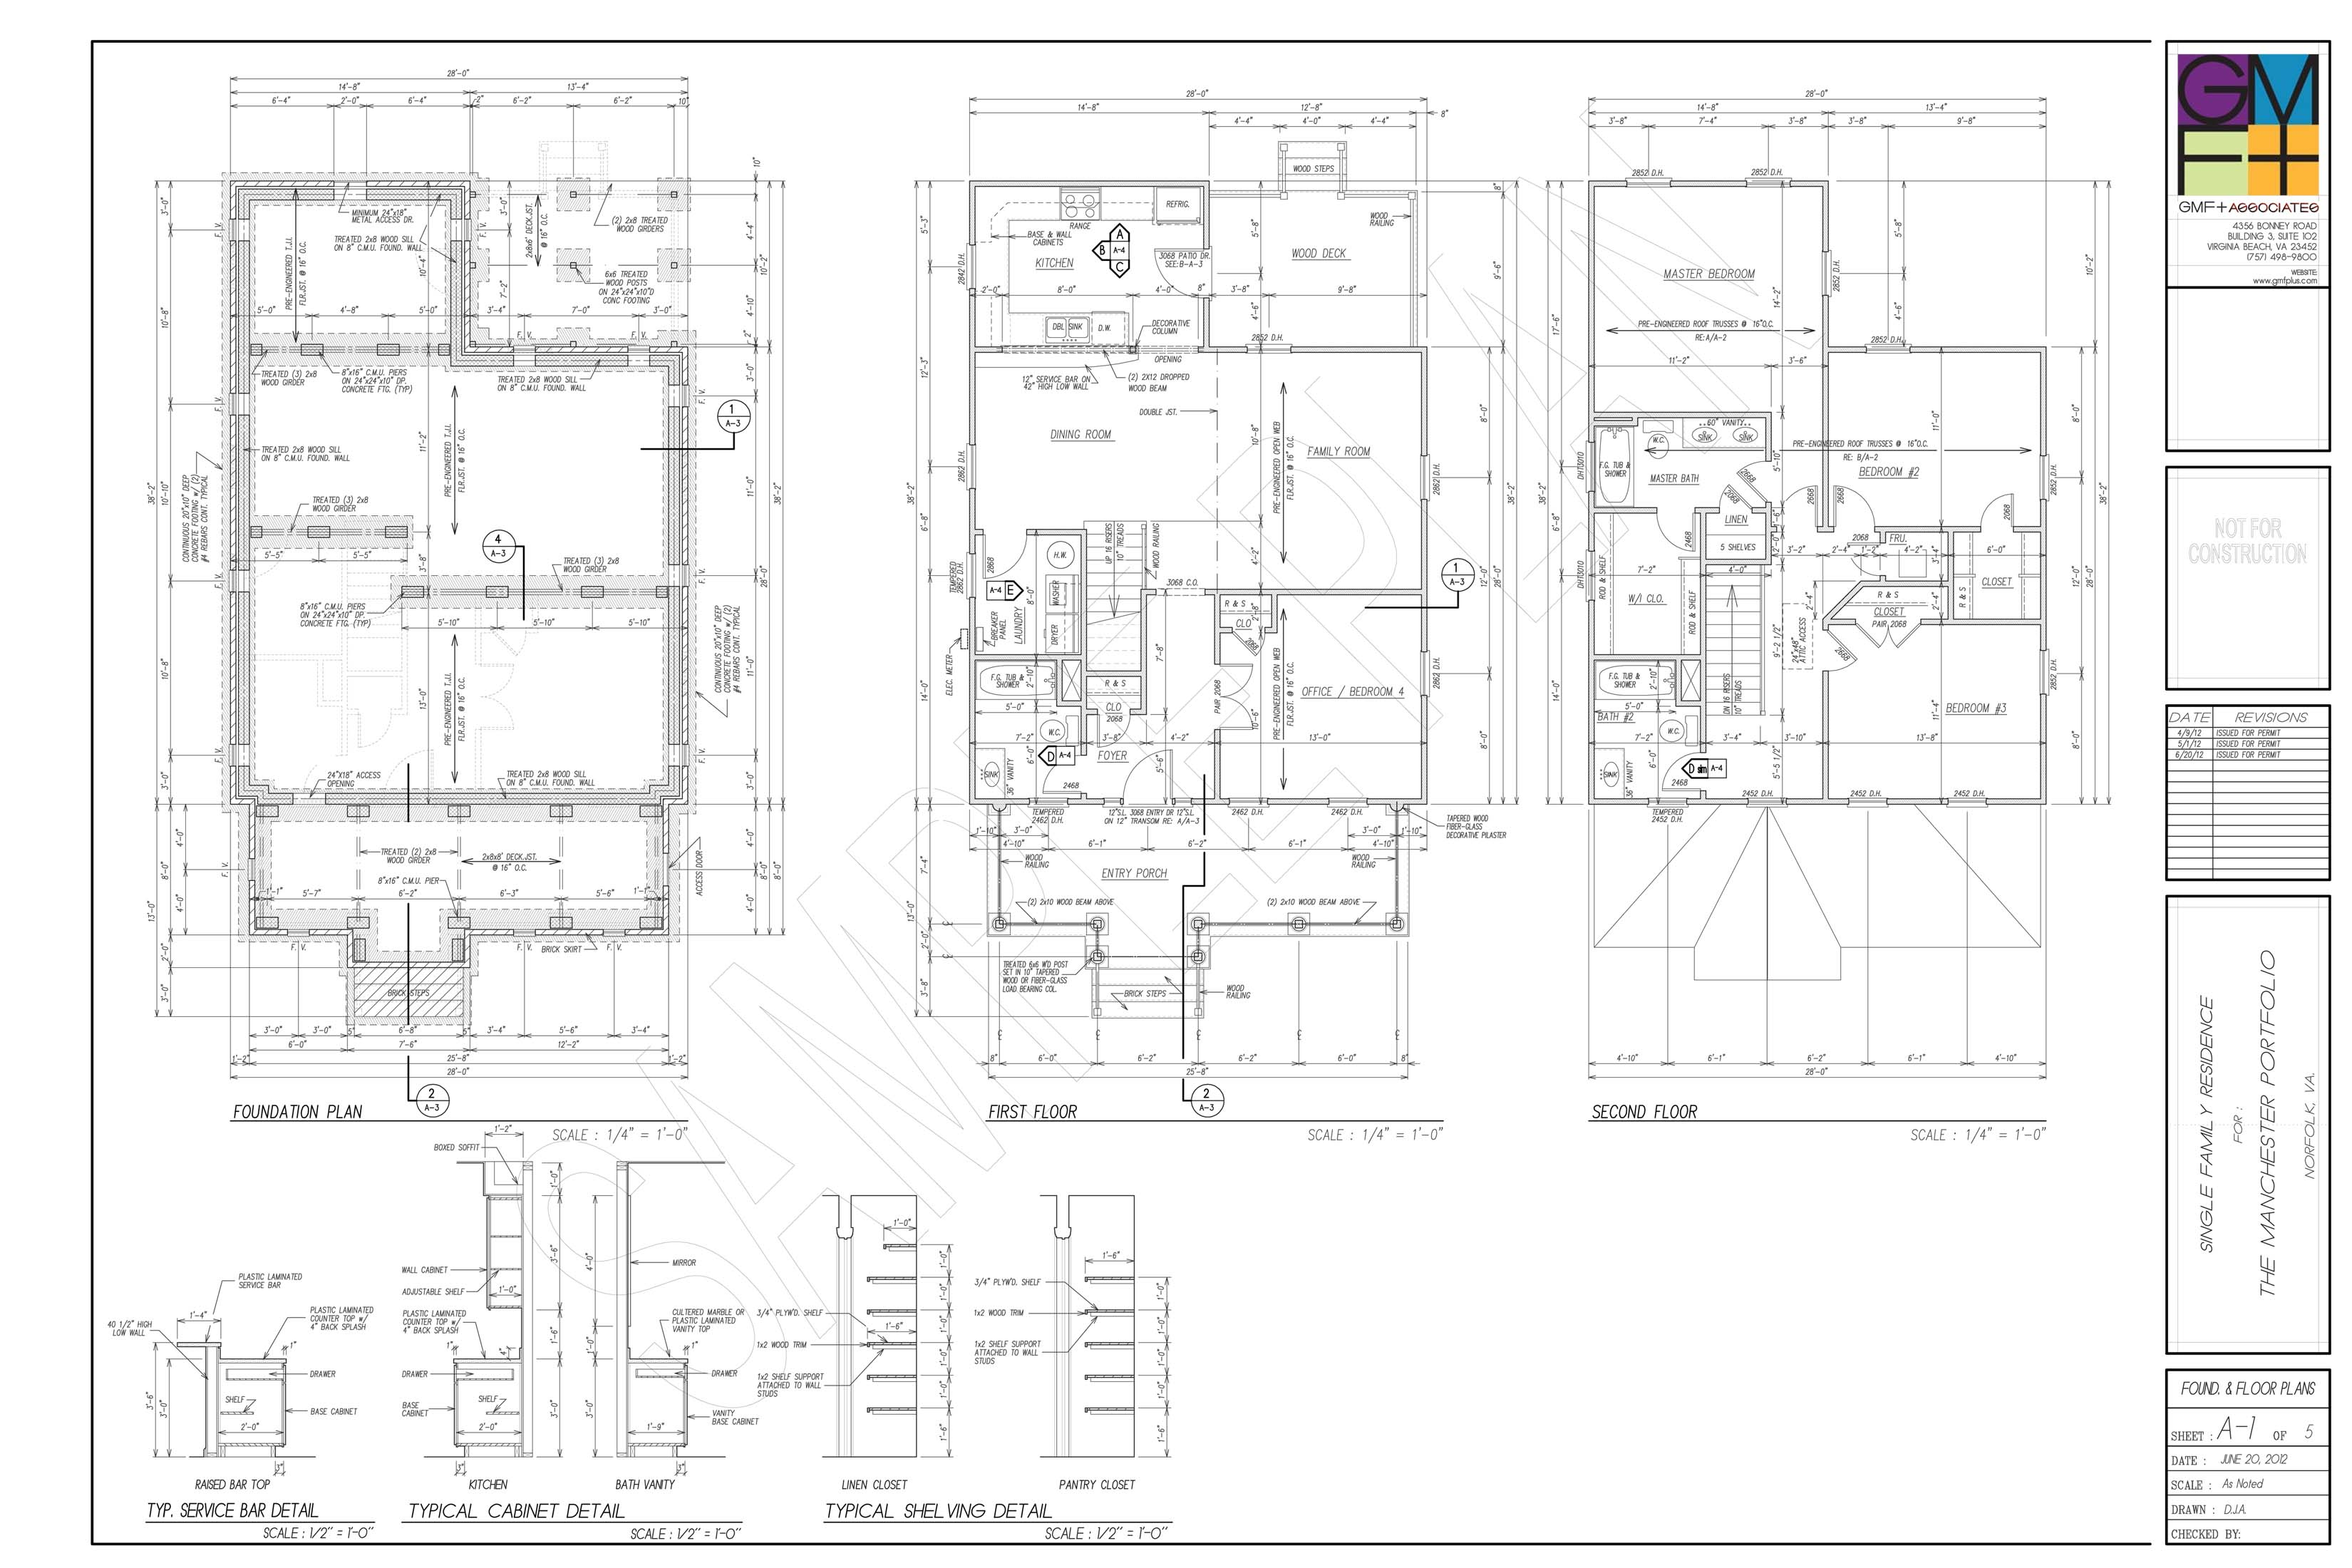 Sample plan set gmf architects house plans gmf - Exterior wall finishes materials ...